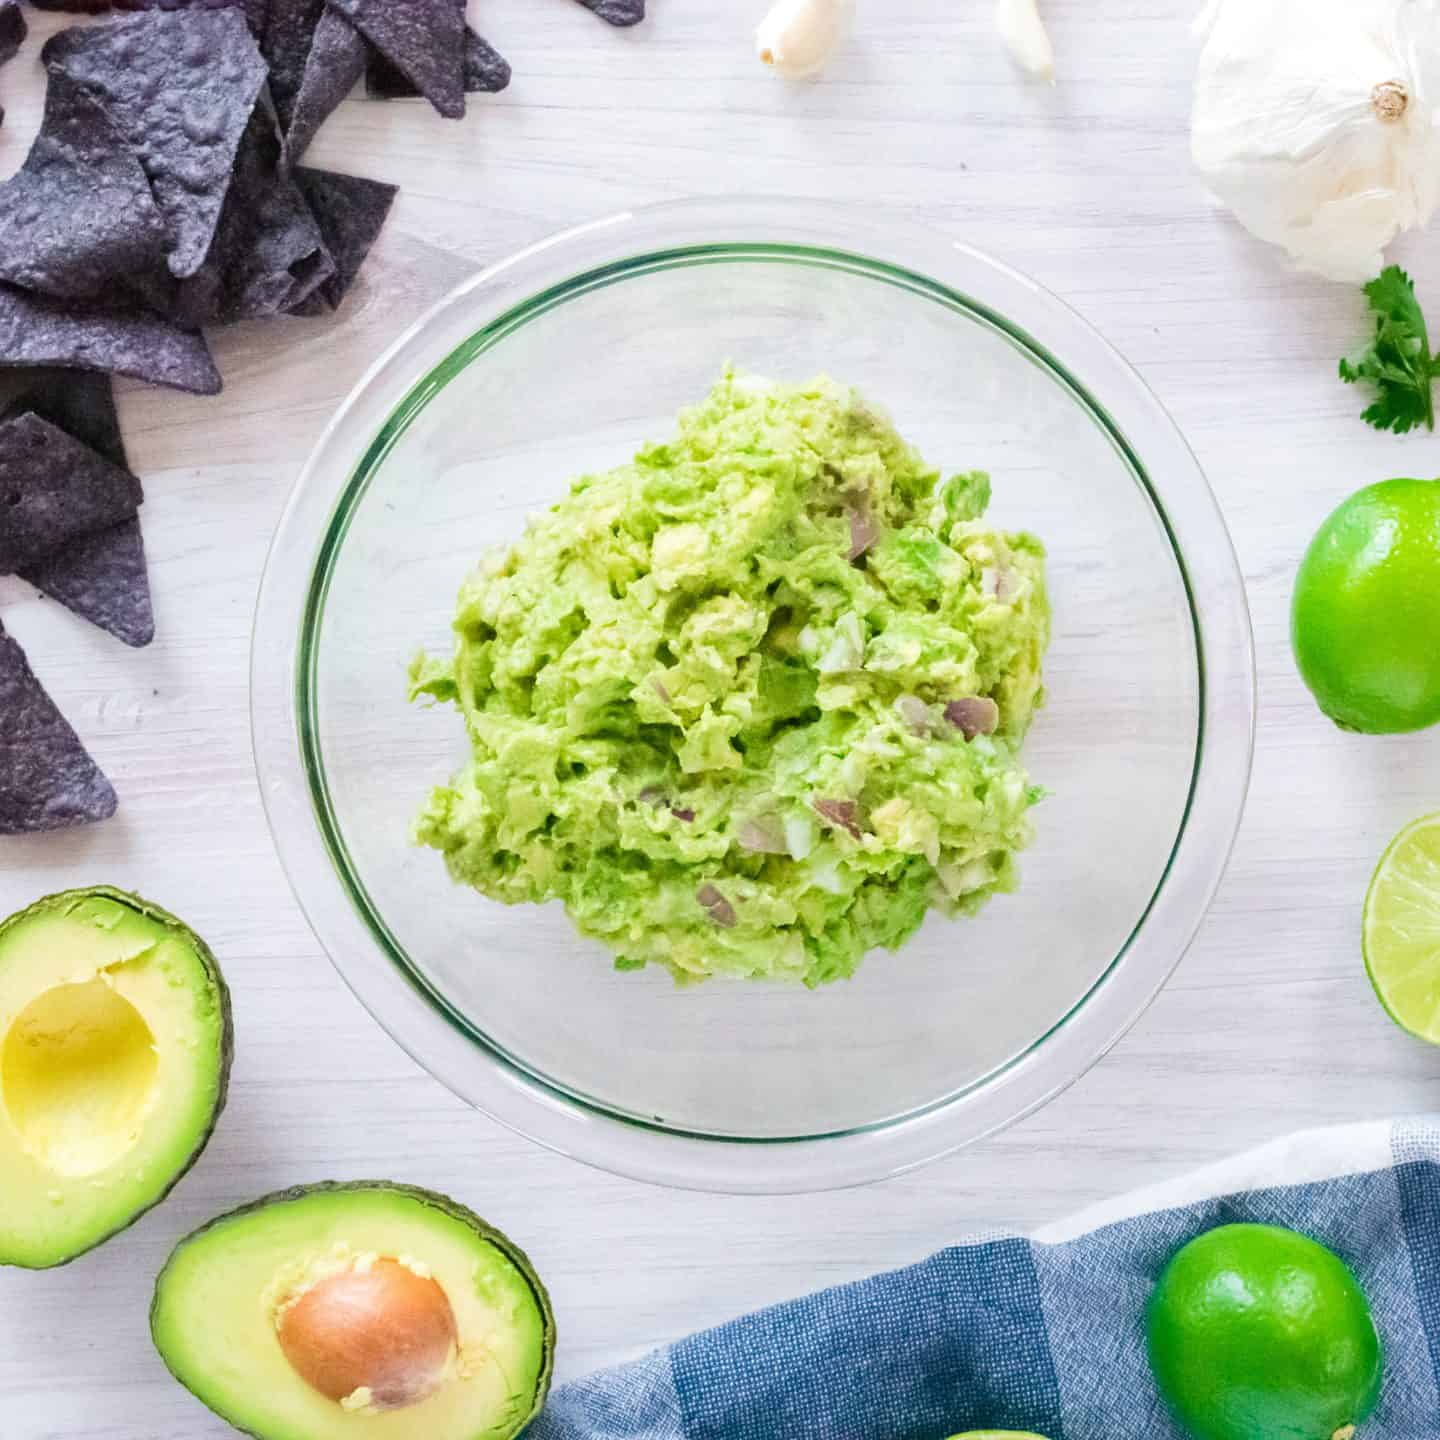 Homemade Guacamole Recipe & Step by Step Instructions